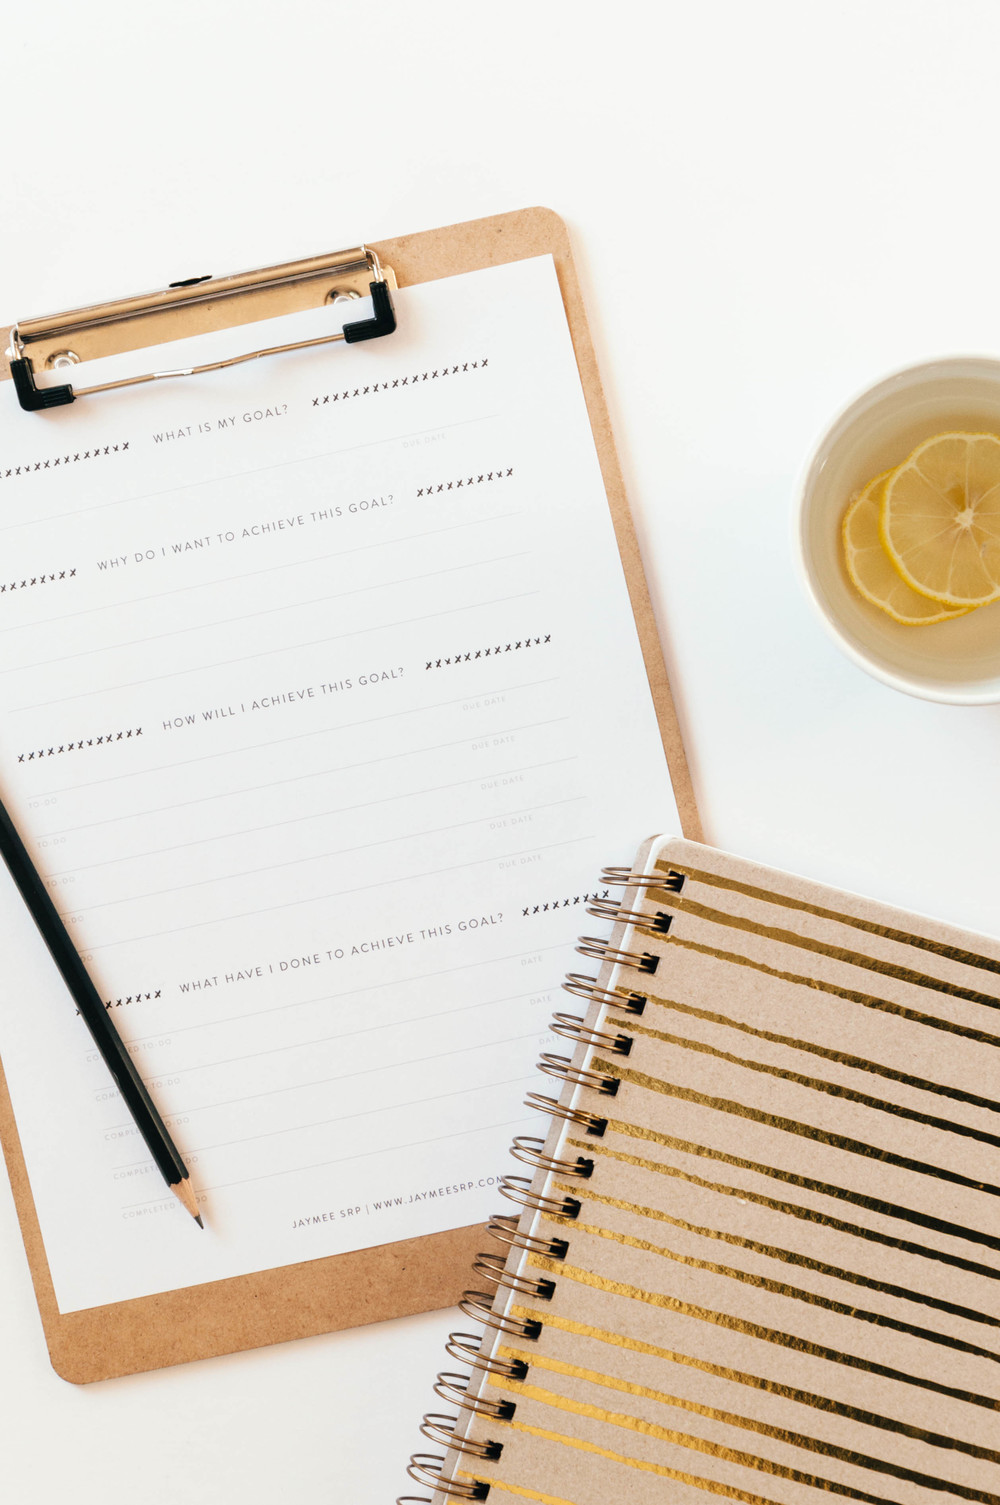 Free home goal setting worksheet.  Click to download and learn more about how to set and achieve goals for your home.